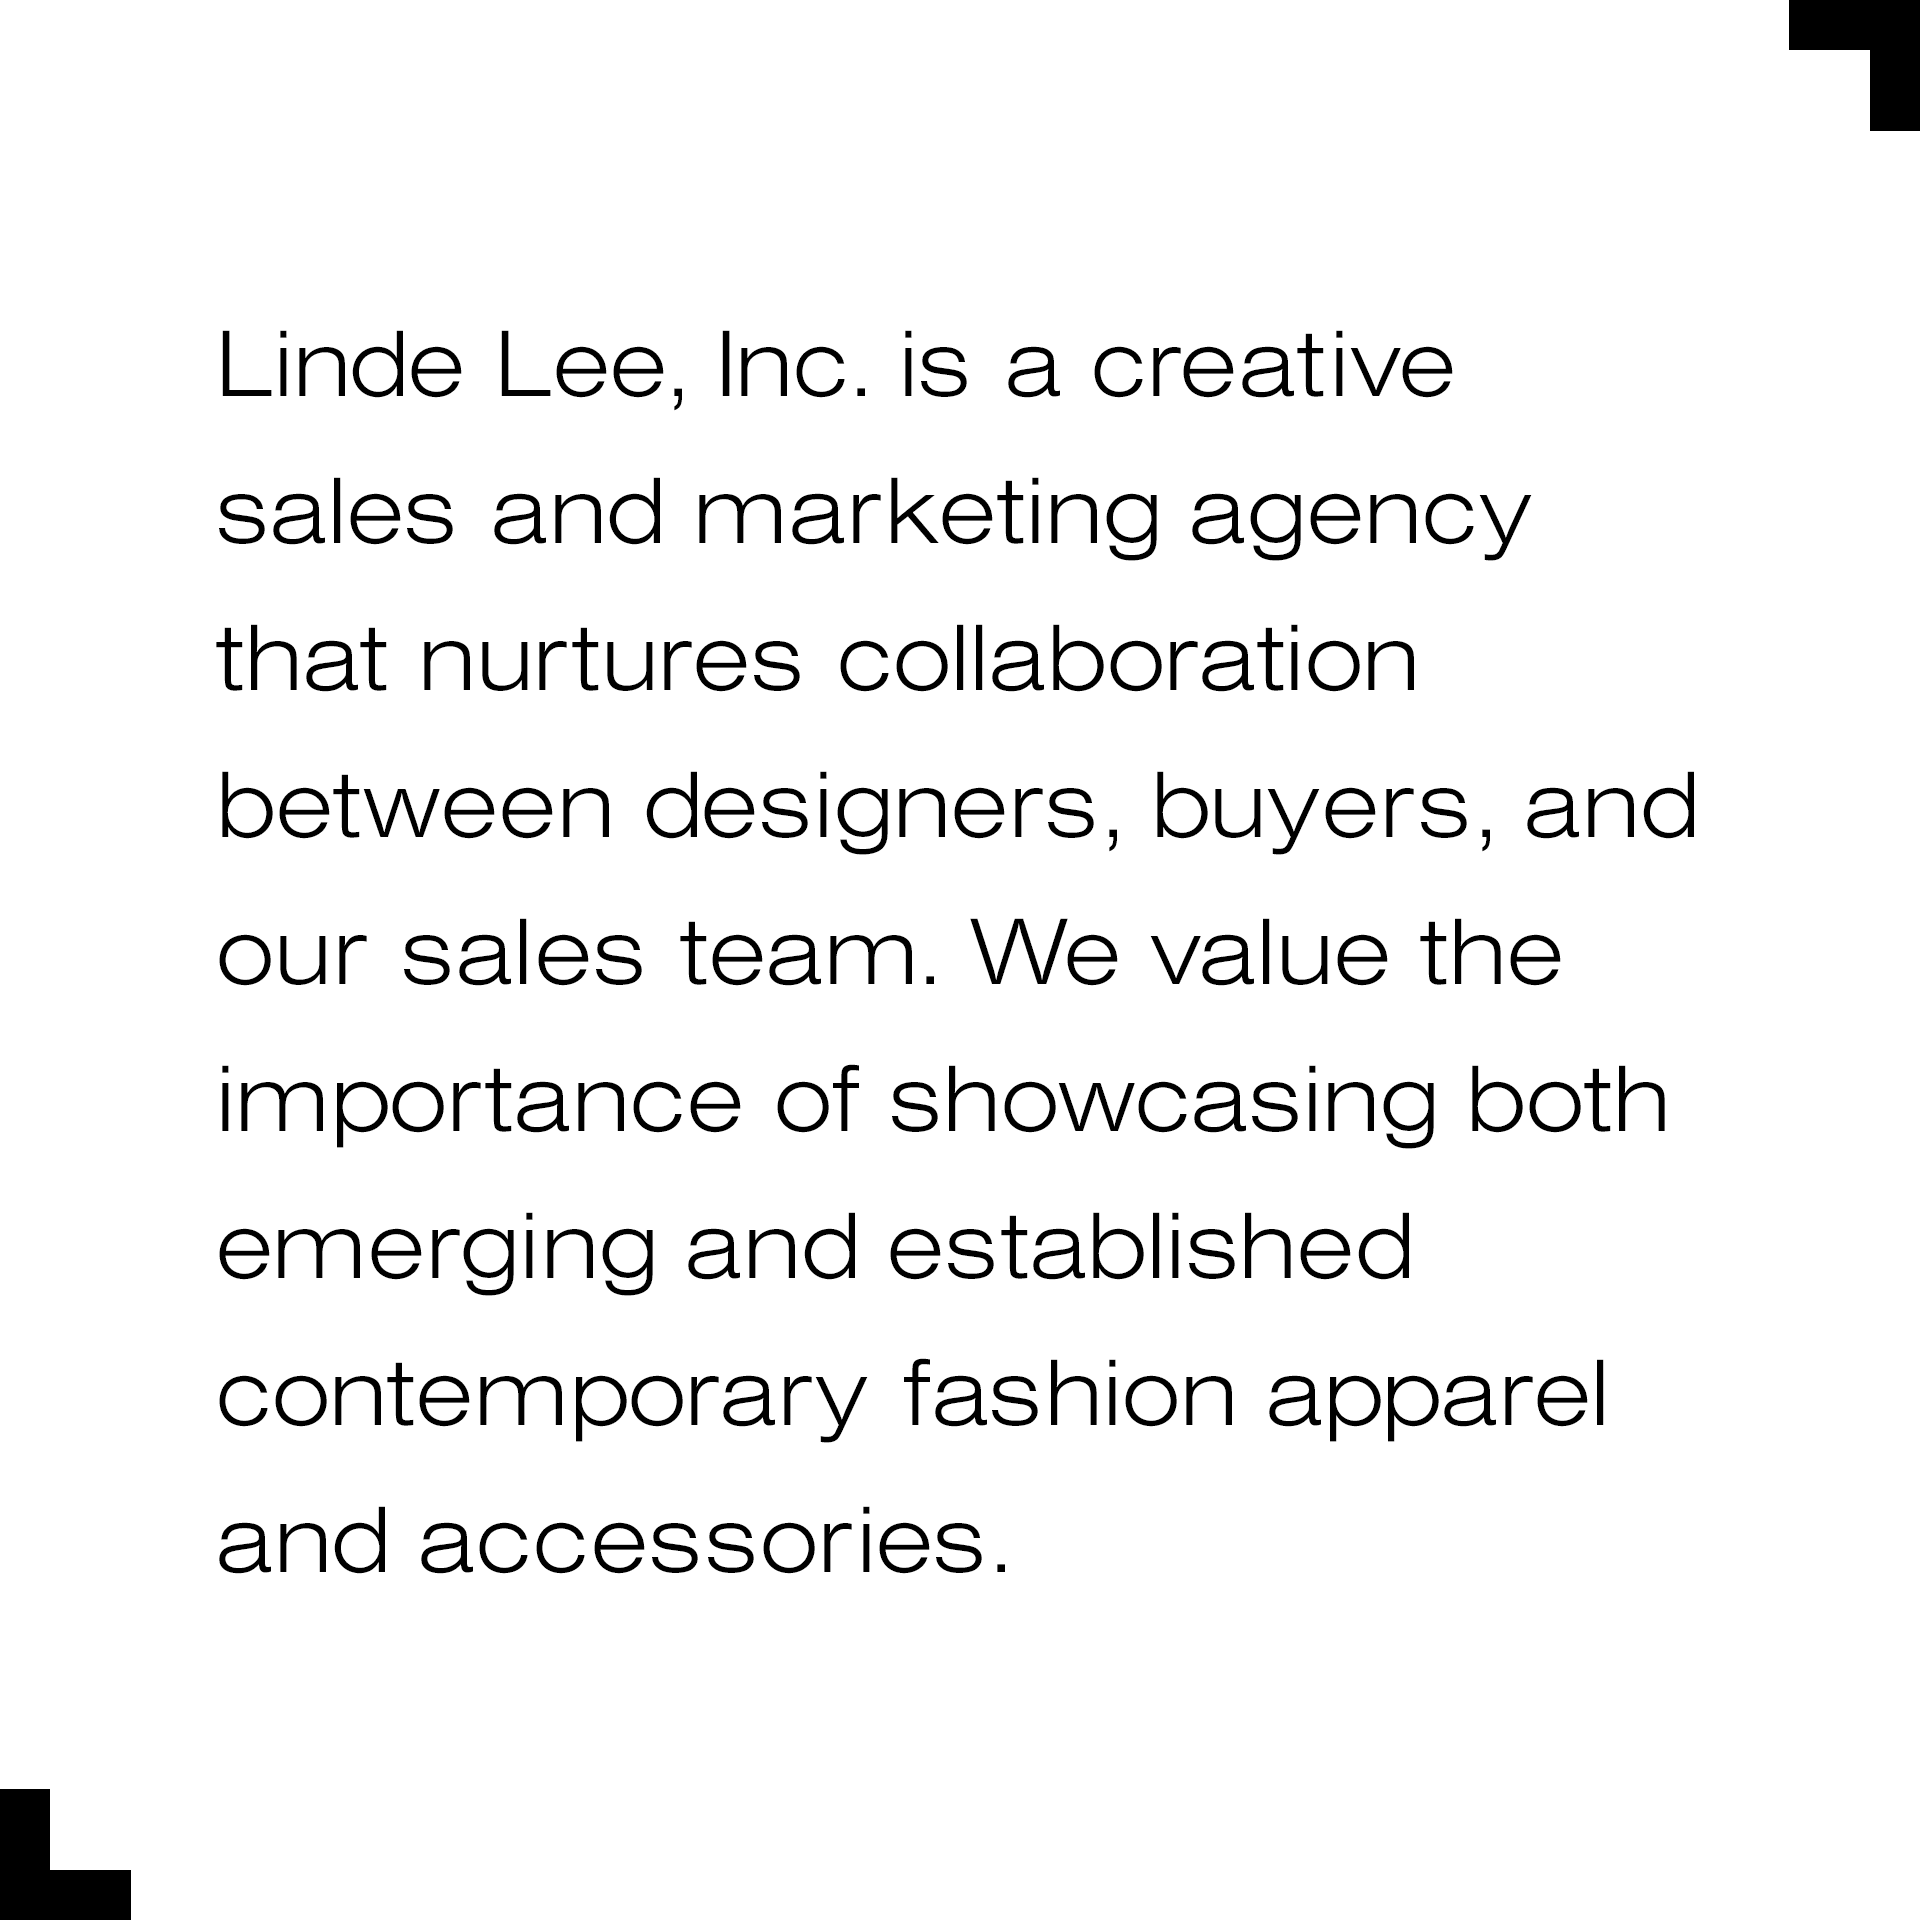 Linde Lee, Inc. is a creative sales and marketing agency that nurtures collaboration between designers, buyers, and our sales team. We value the importance of showcasing both emerging and established contemporary fashion apparel and accessories.